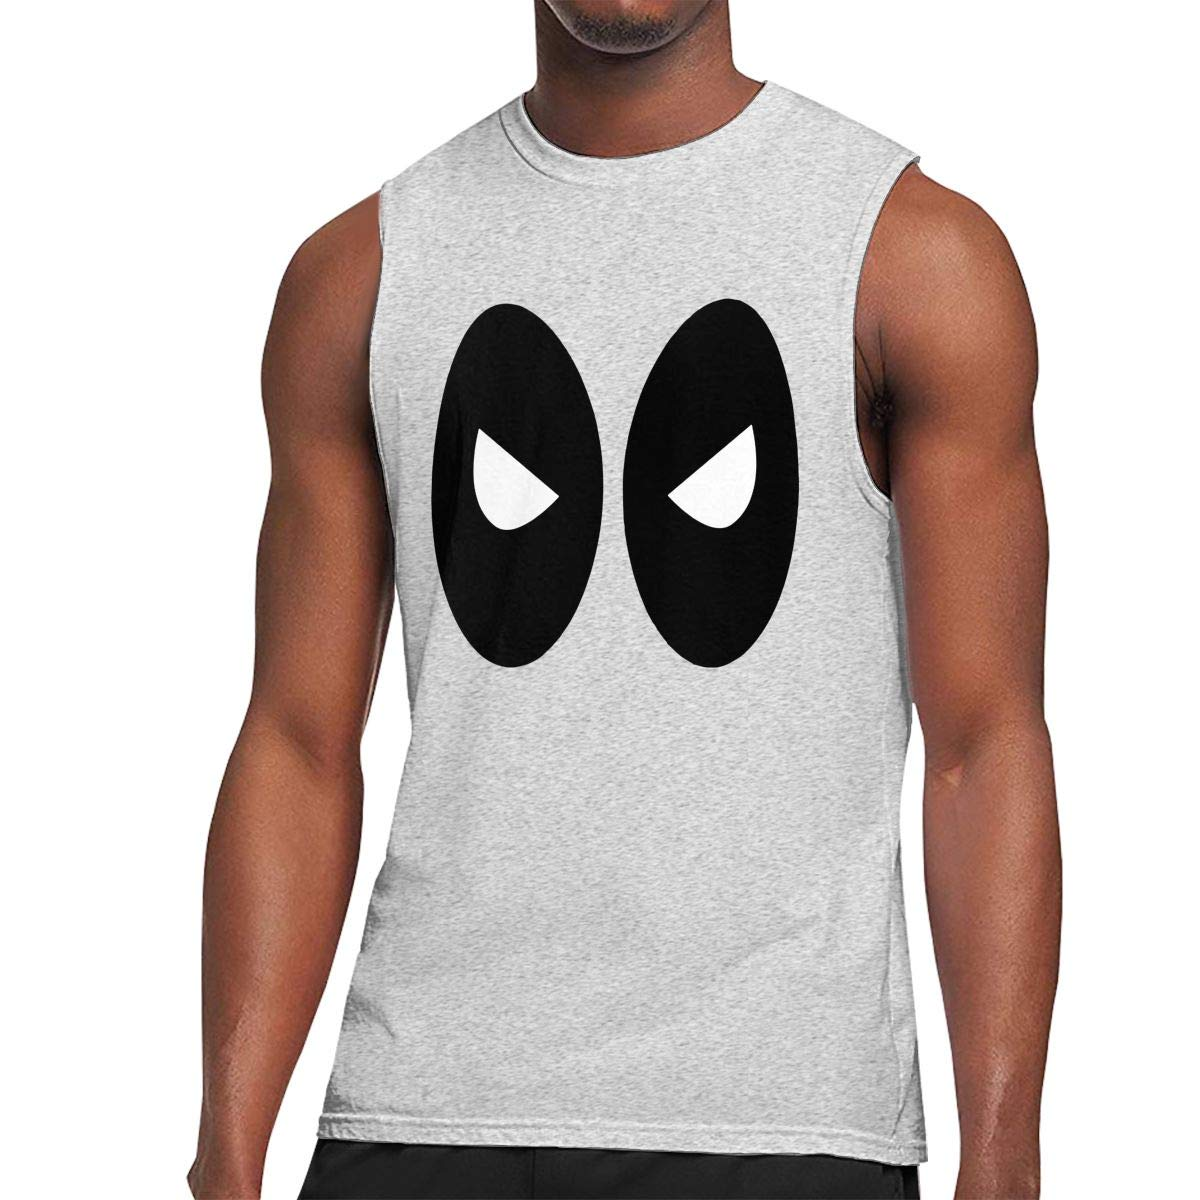 Death Stare Mens Sleeveless Activewear Top Jersey